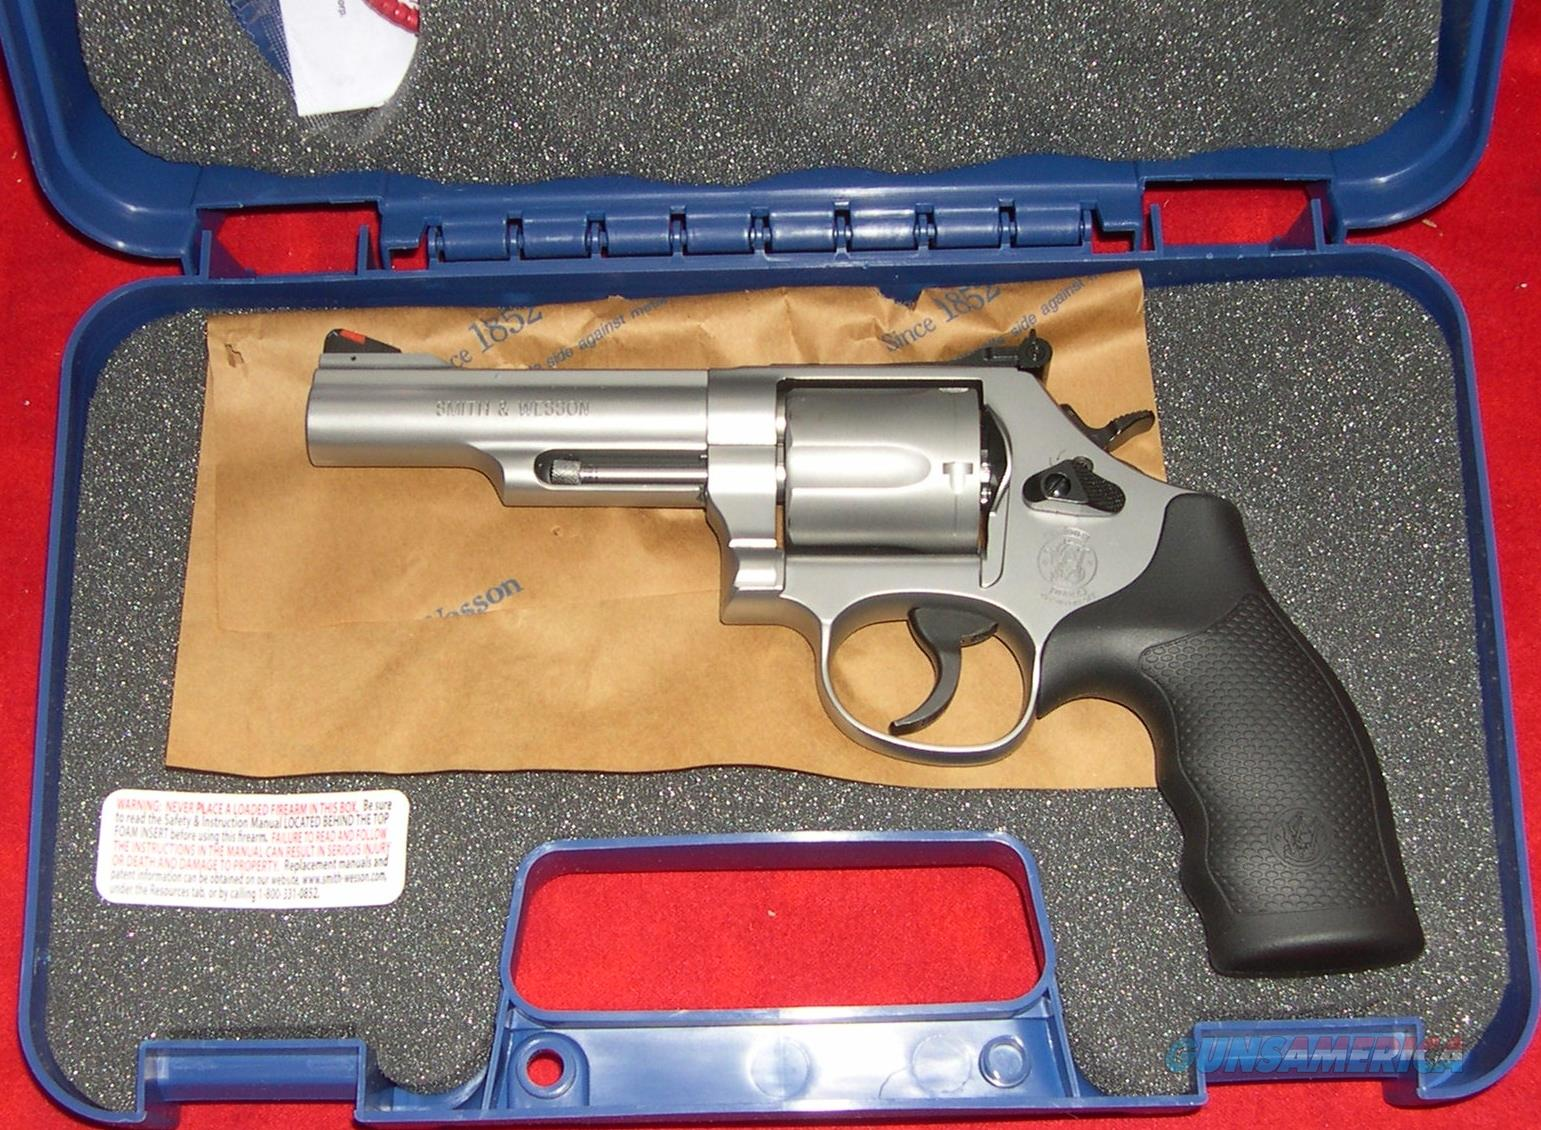 Smith & Wesson Model 69 44 Mag Stainless Steel 5 shot  Guns > Pistols > Smith & Wesson Revolvers > Full Frame Revolver